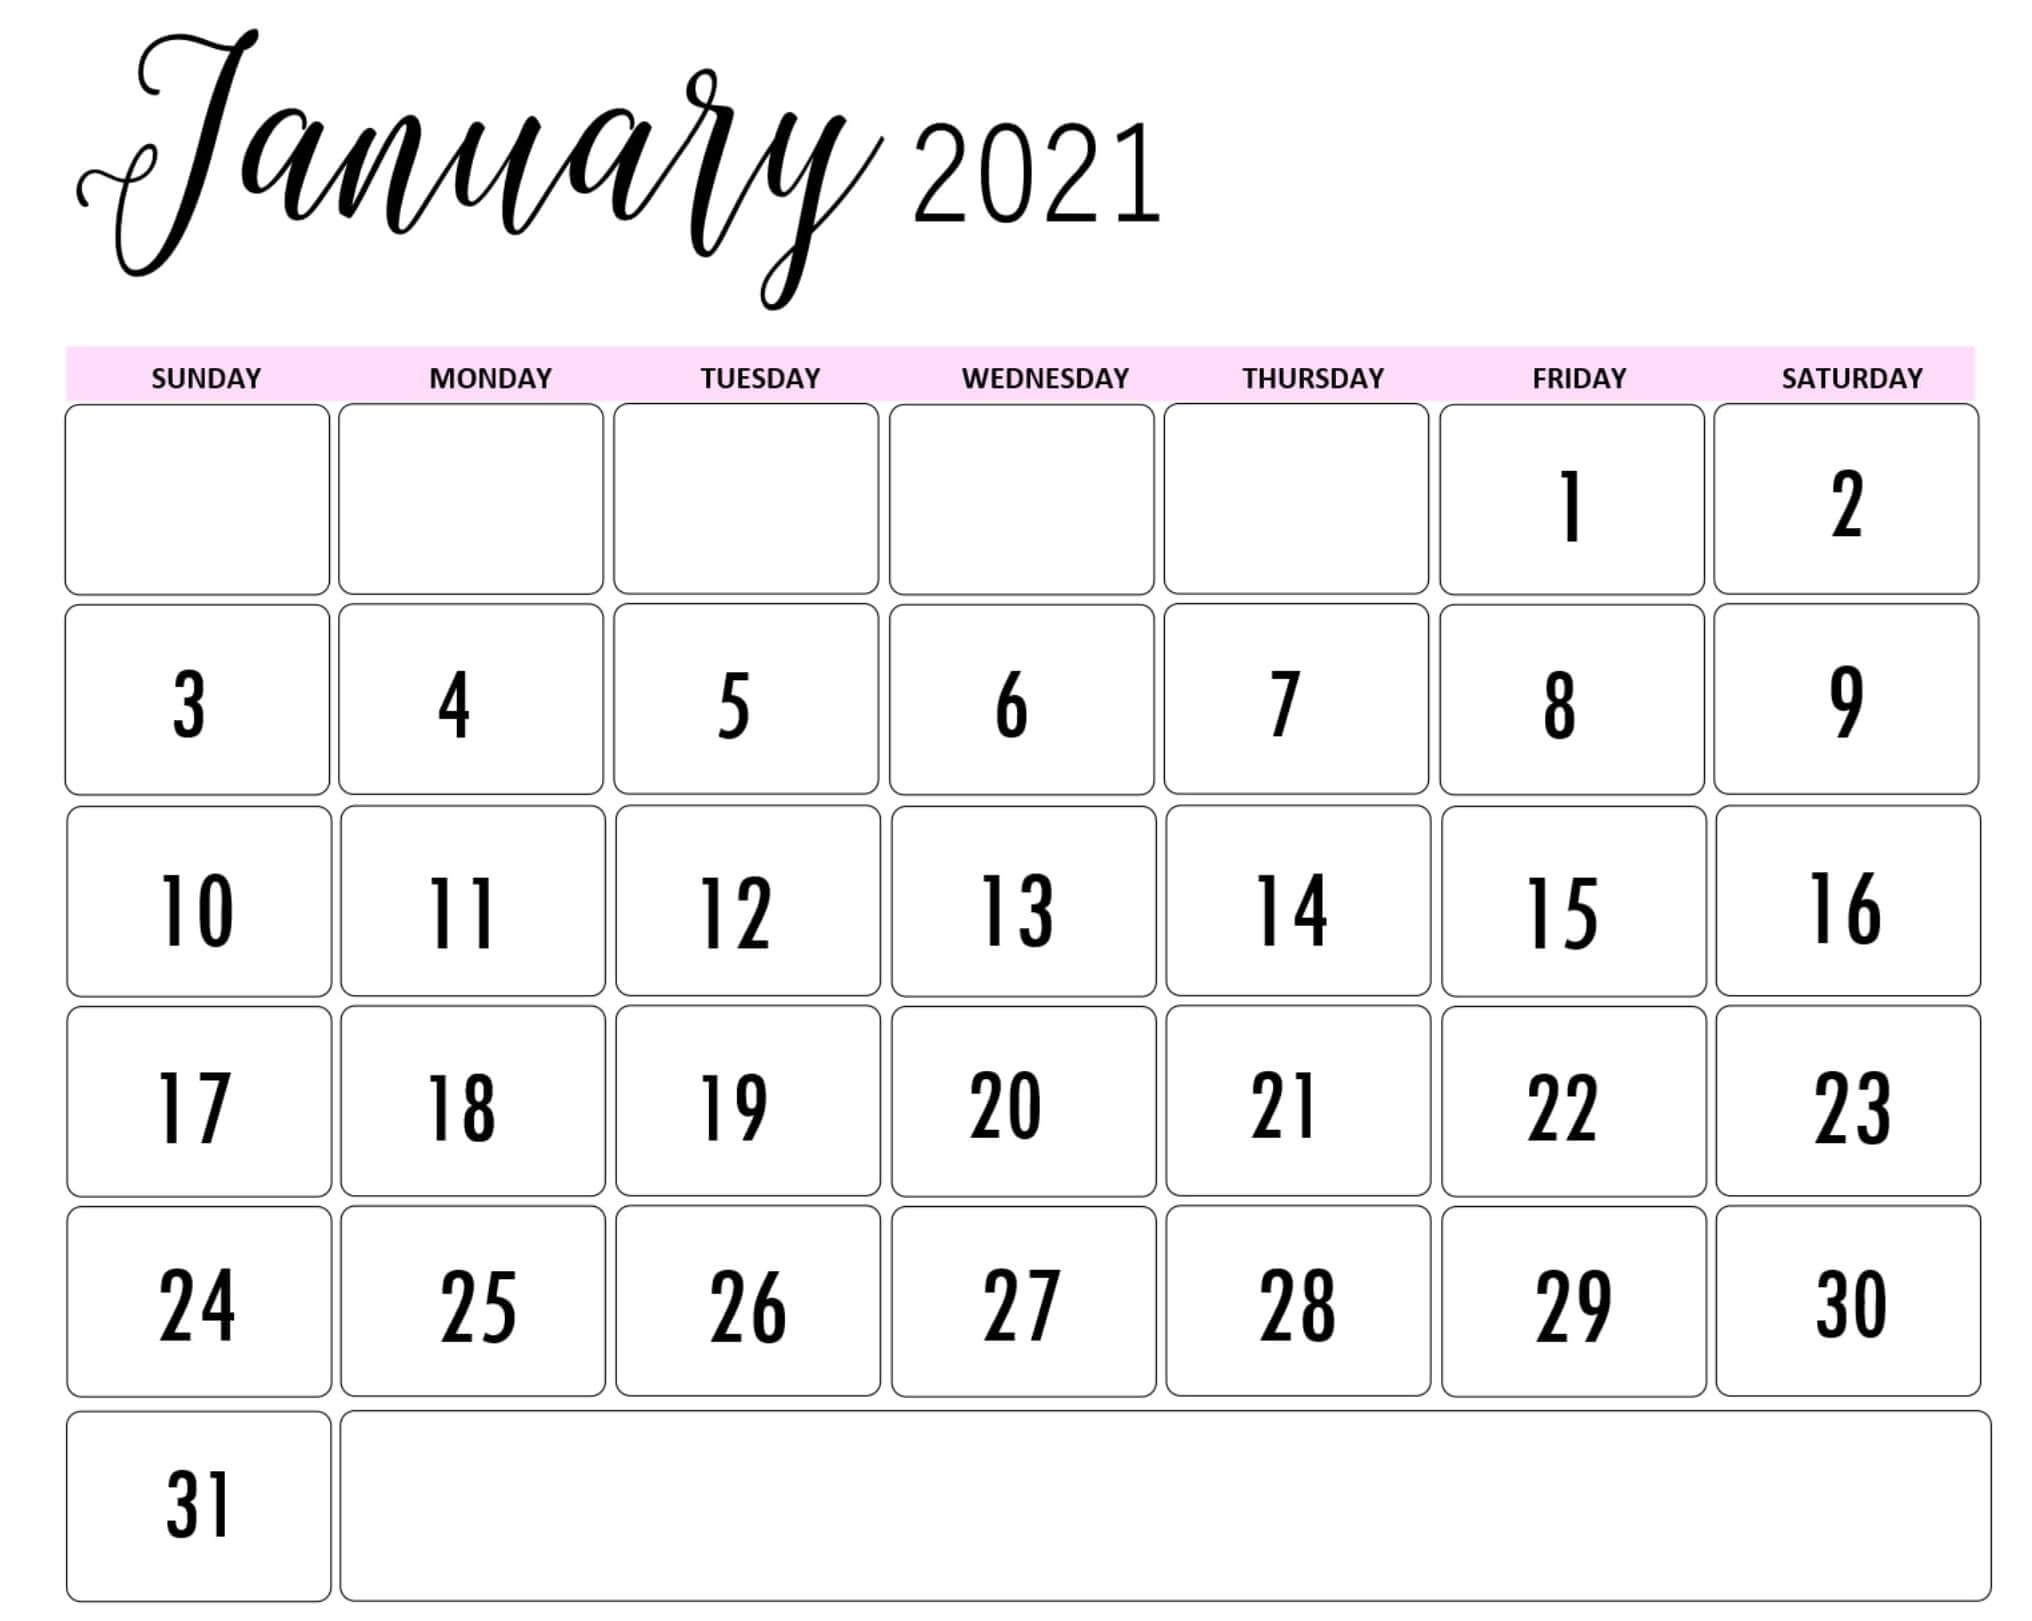 January 2021 Cute Calendar Wallpaper